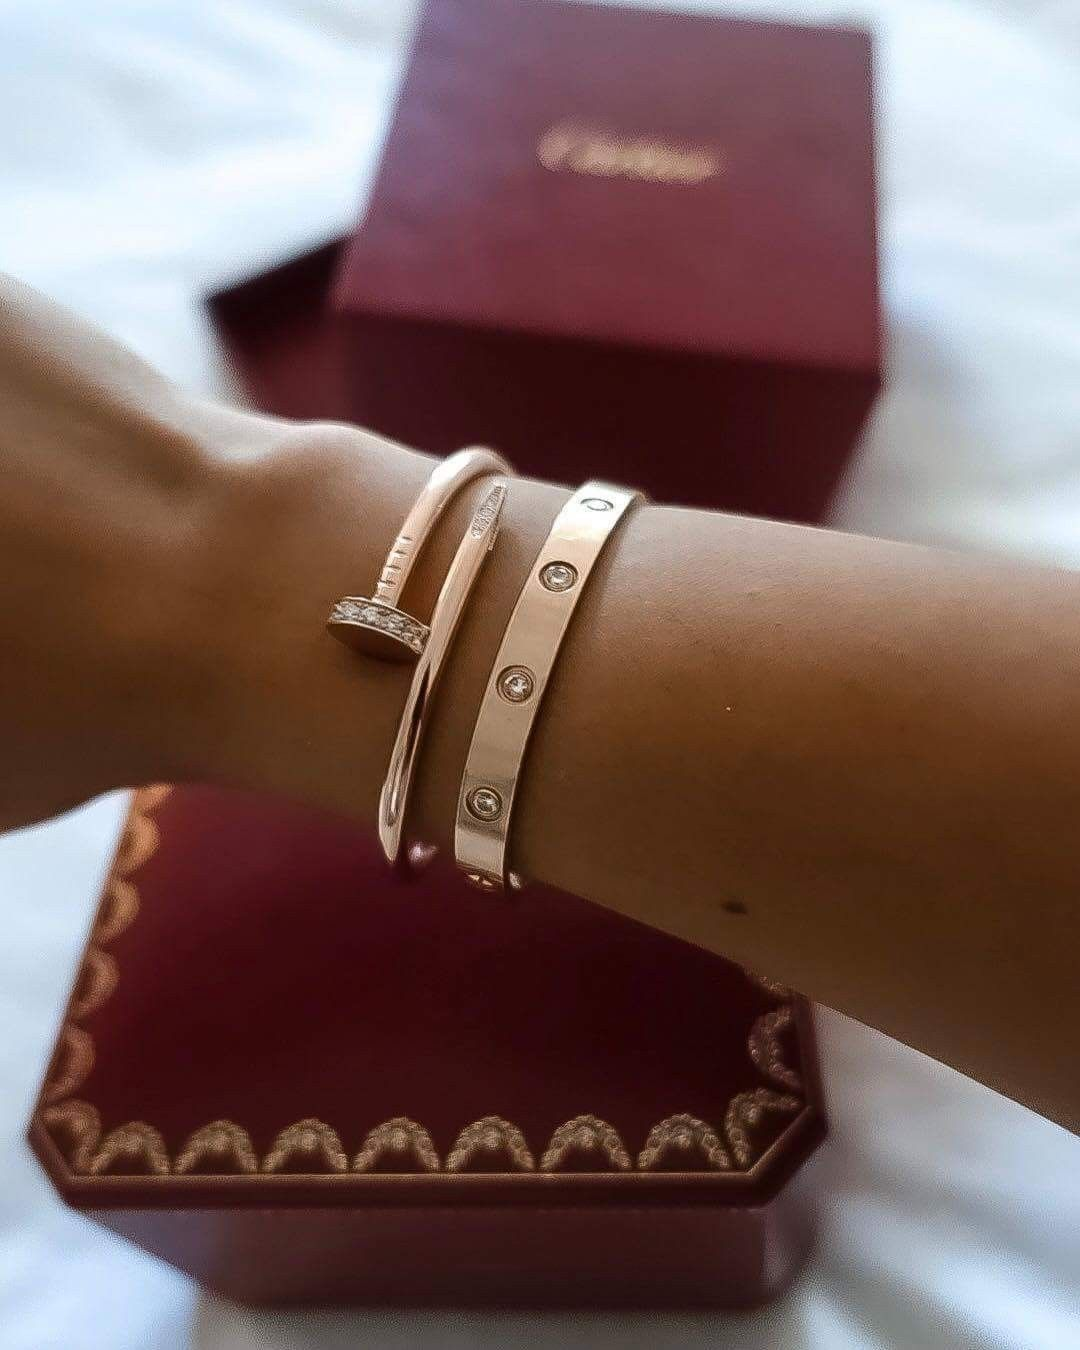 Jewelry Stacking Ideas: How to Use, Match, Wear, Stack